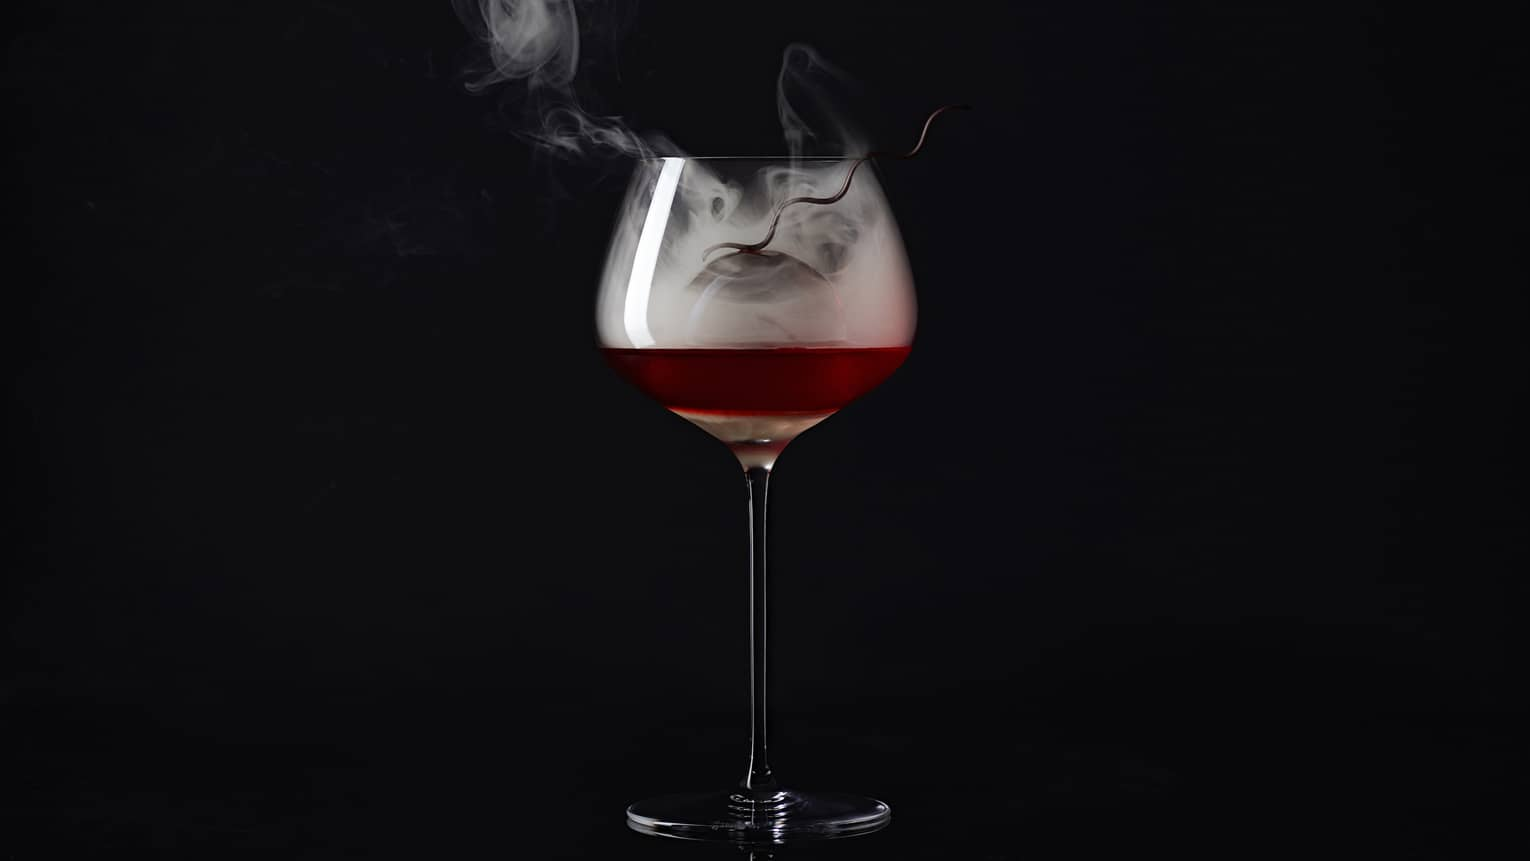 Smokey Old-Fashioned cocktail, smoke rising from tall wine glass